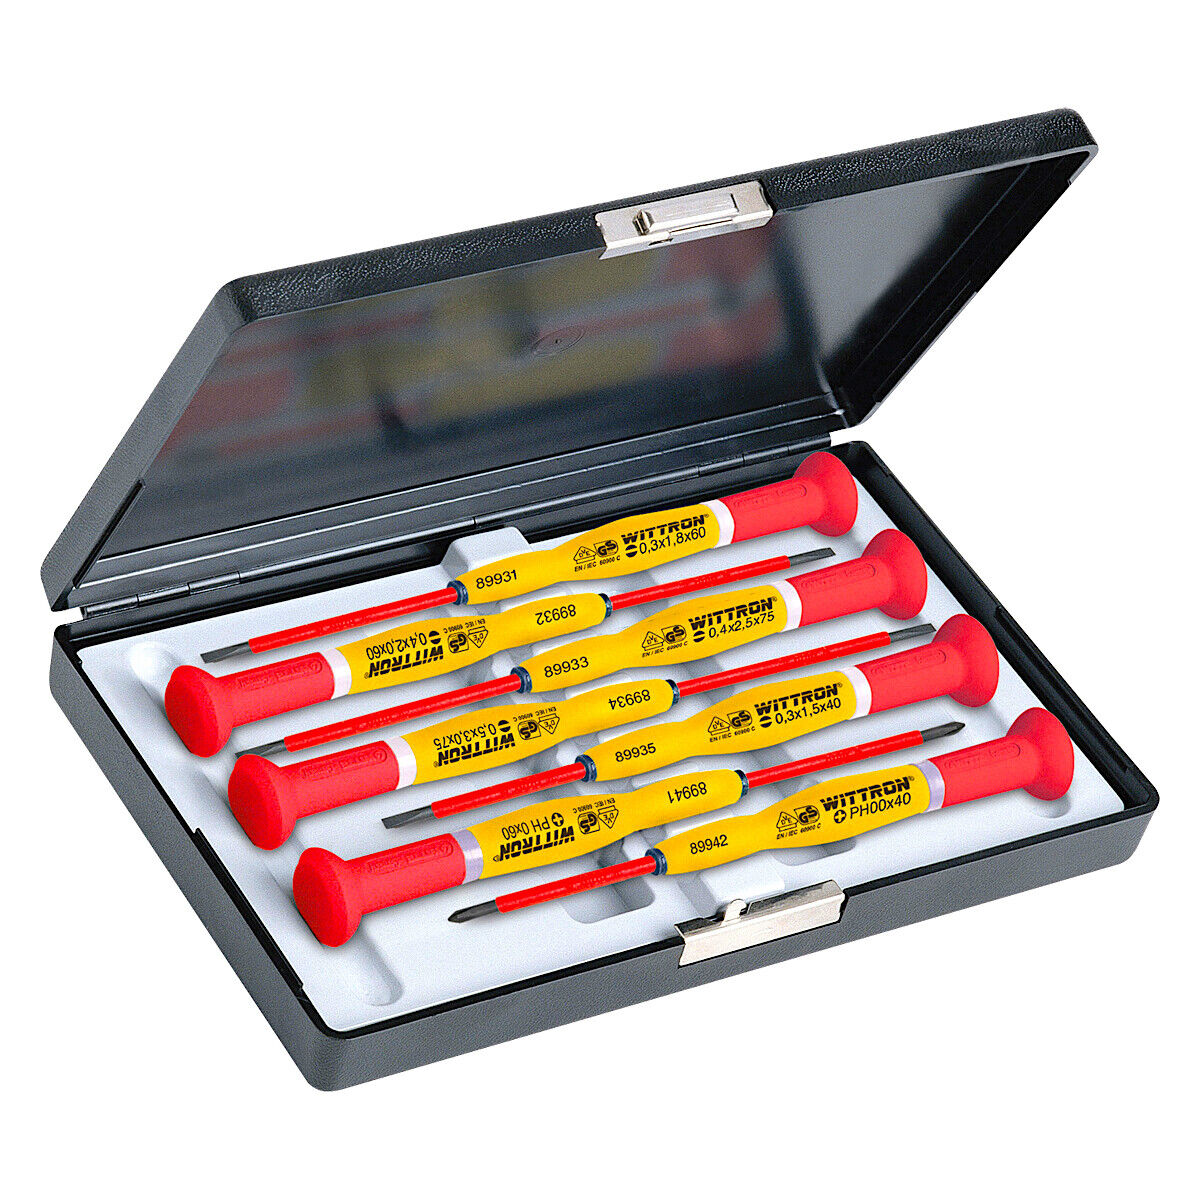 Witte 7 Piece Wittron Insulated Slotted and Phillips Screwdriver Set W  Case